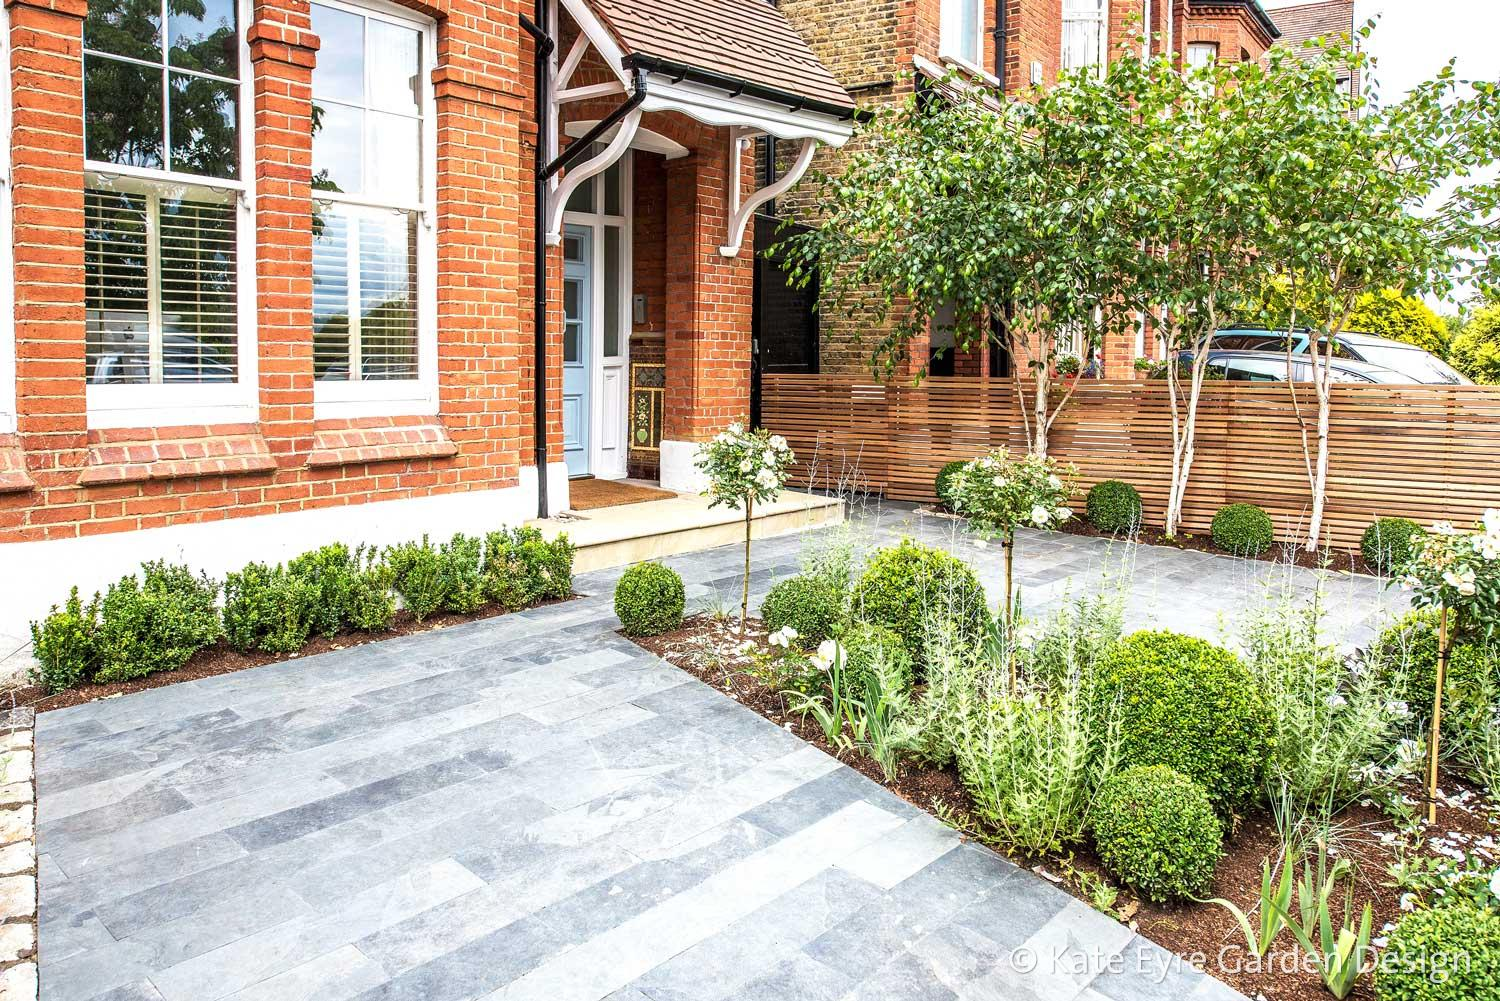 Front garden design in london by kate eyre for Modern front garden design